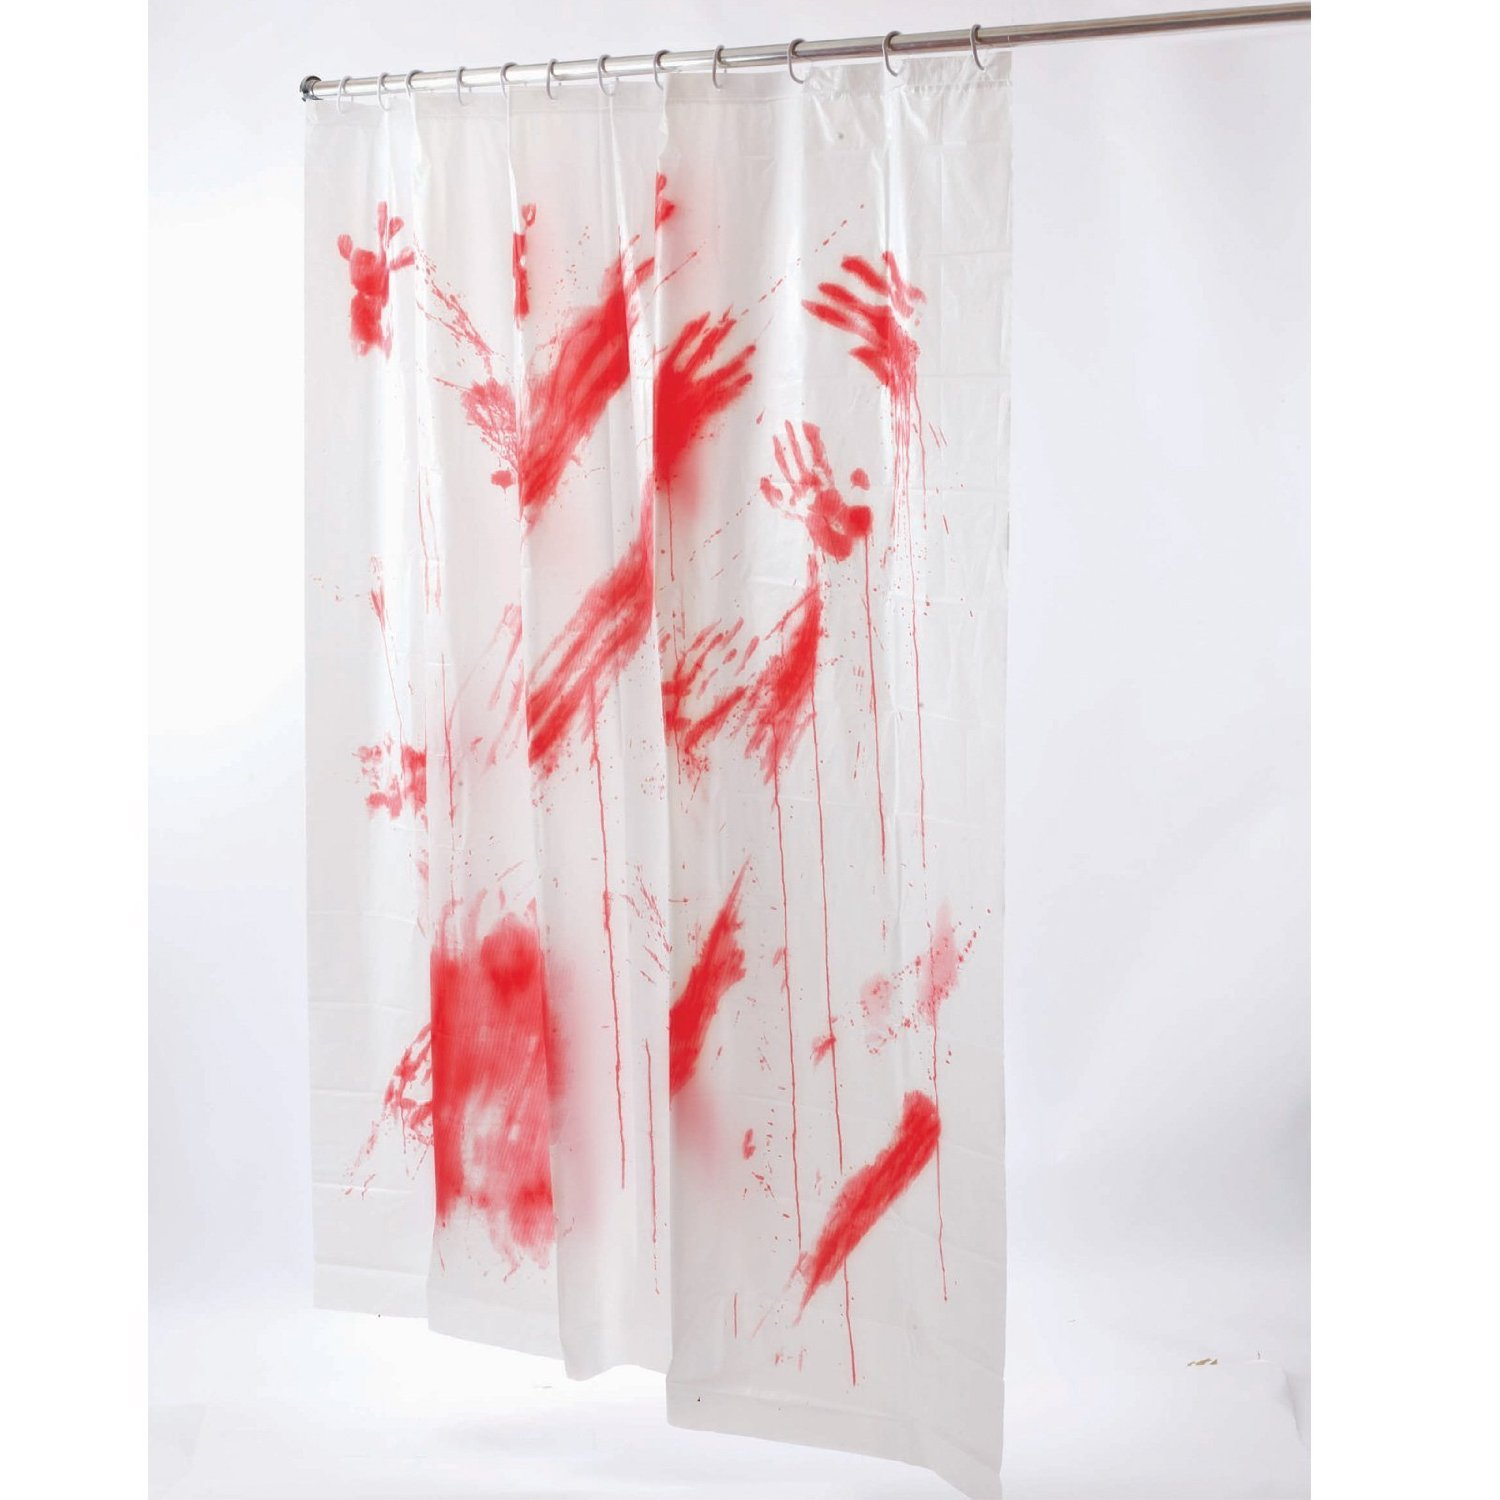 Scary shower curtain - Bloody Shower Curtain